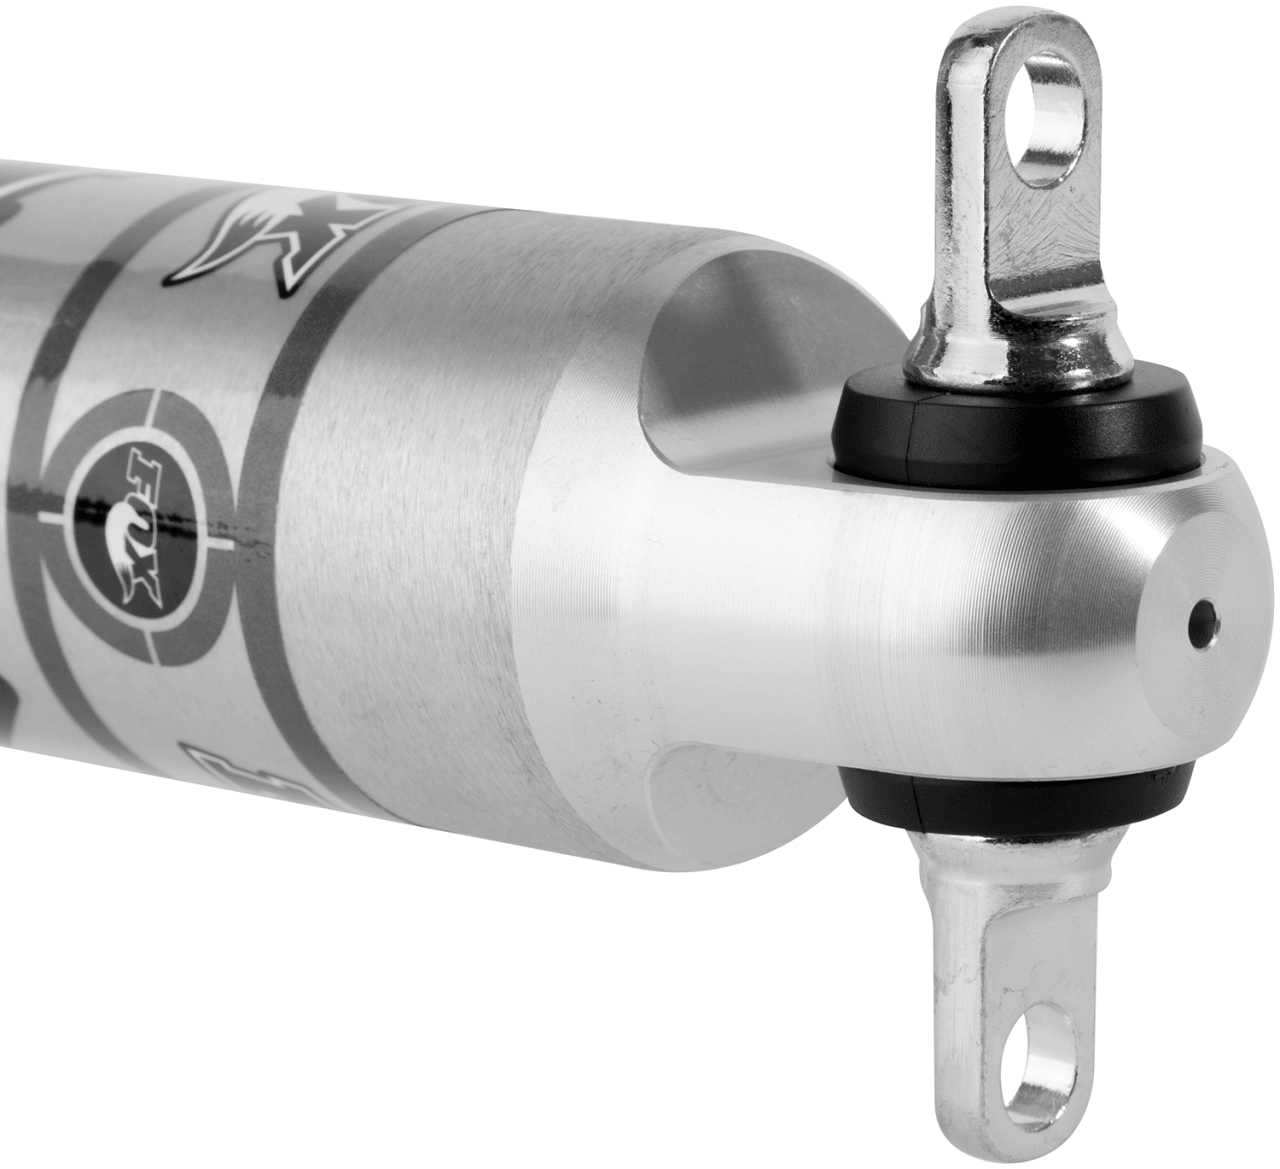 PERFORMANCE SERIES 2.0 SMOOTH BODY IFP SHOCK